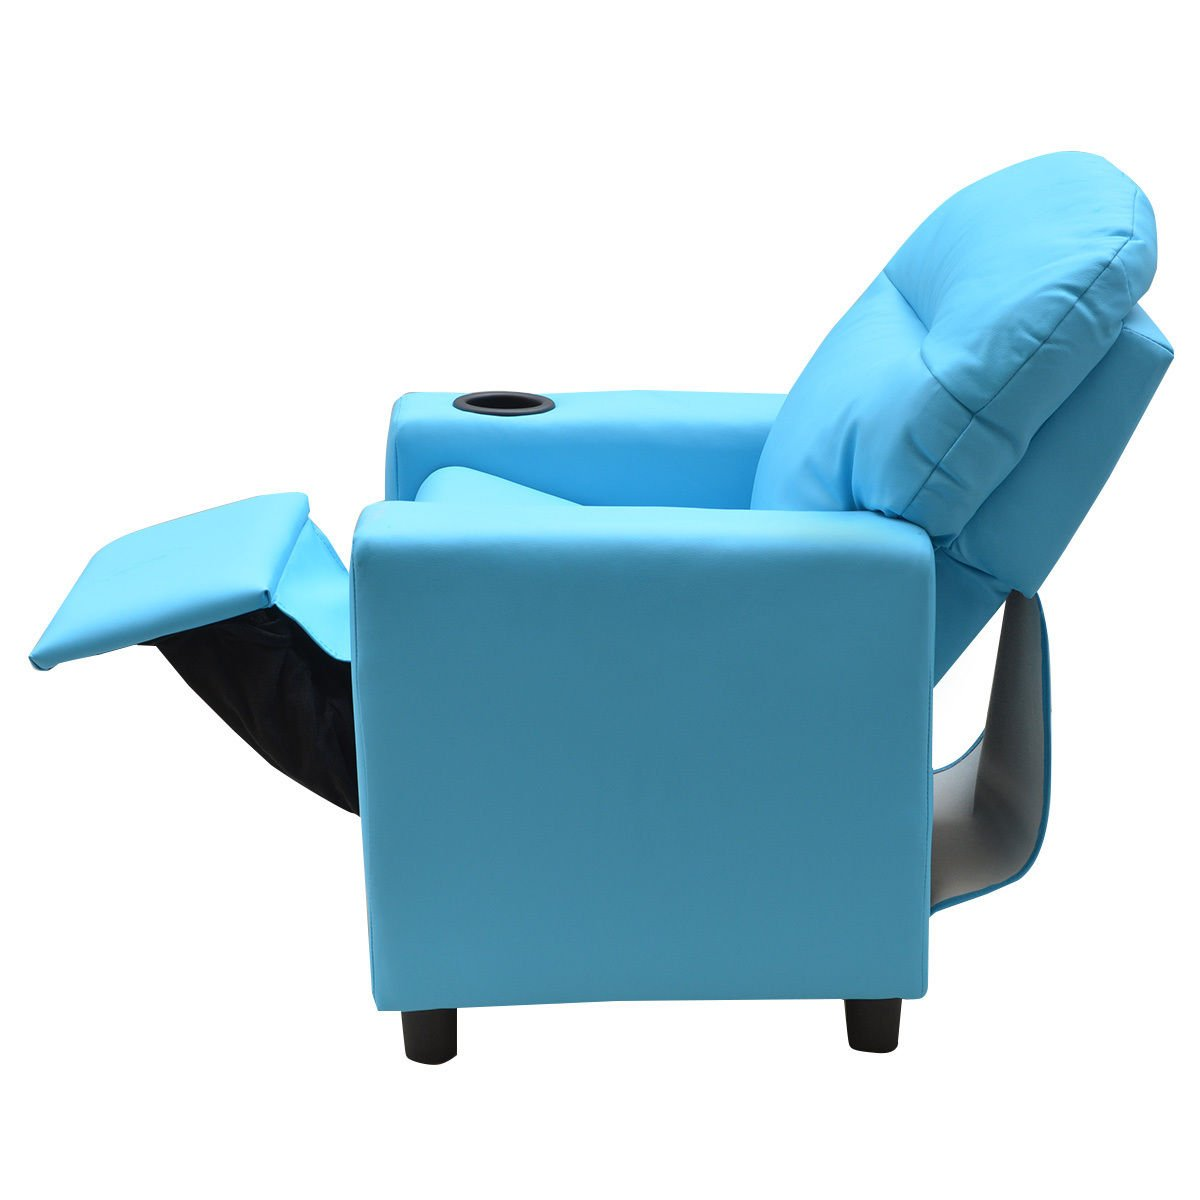 Costzon Contemporary Kids Recliner, PU Leather Lounge Furniture for Boys & Girls W/Cup Holder, Children Sofa Chair (Blue) by Costzon